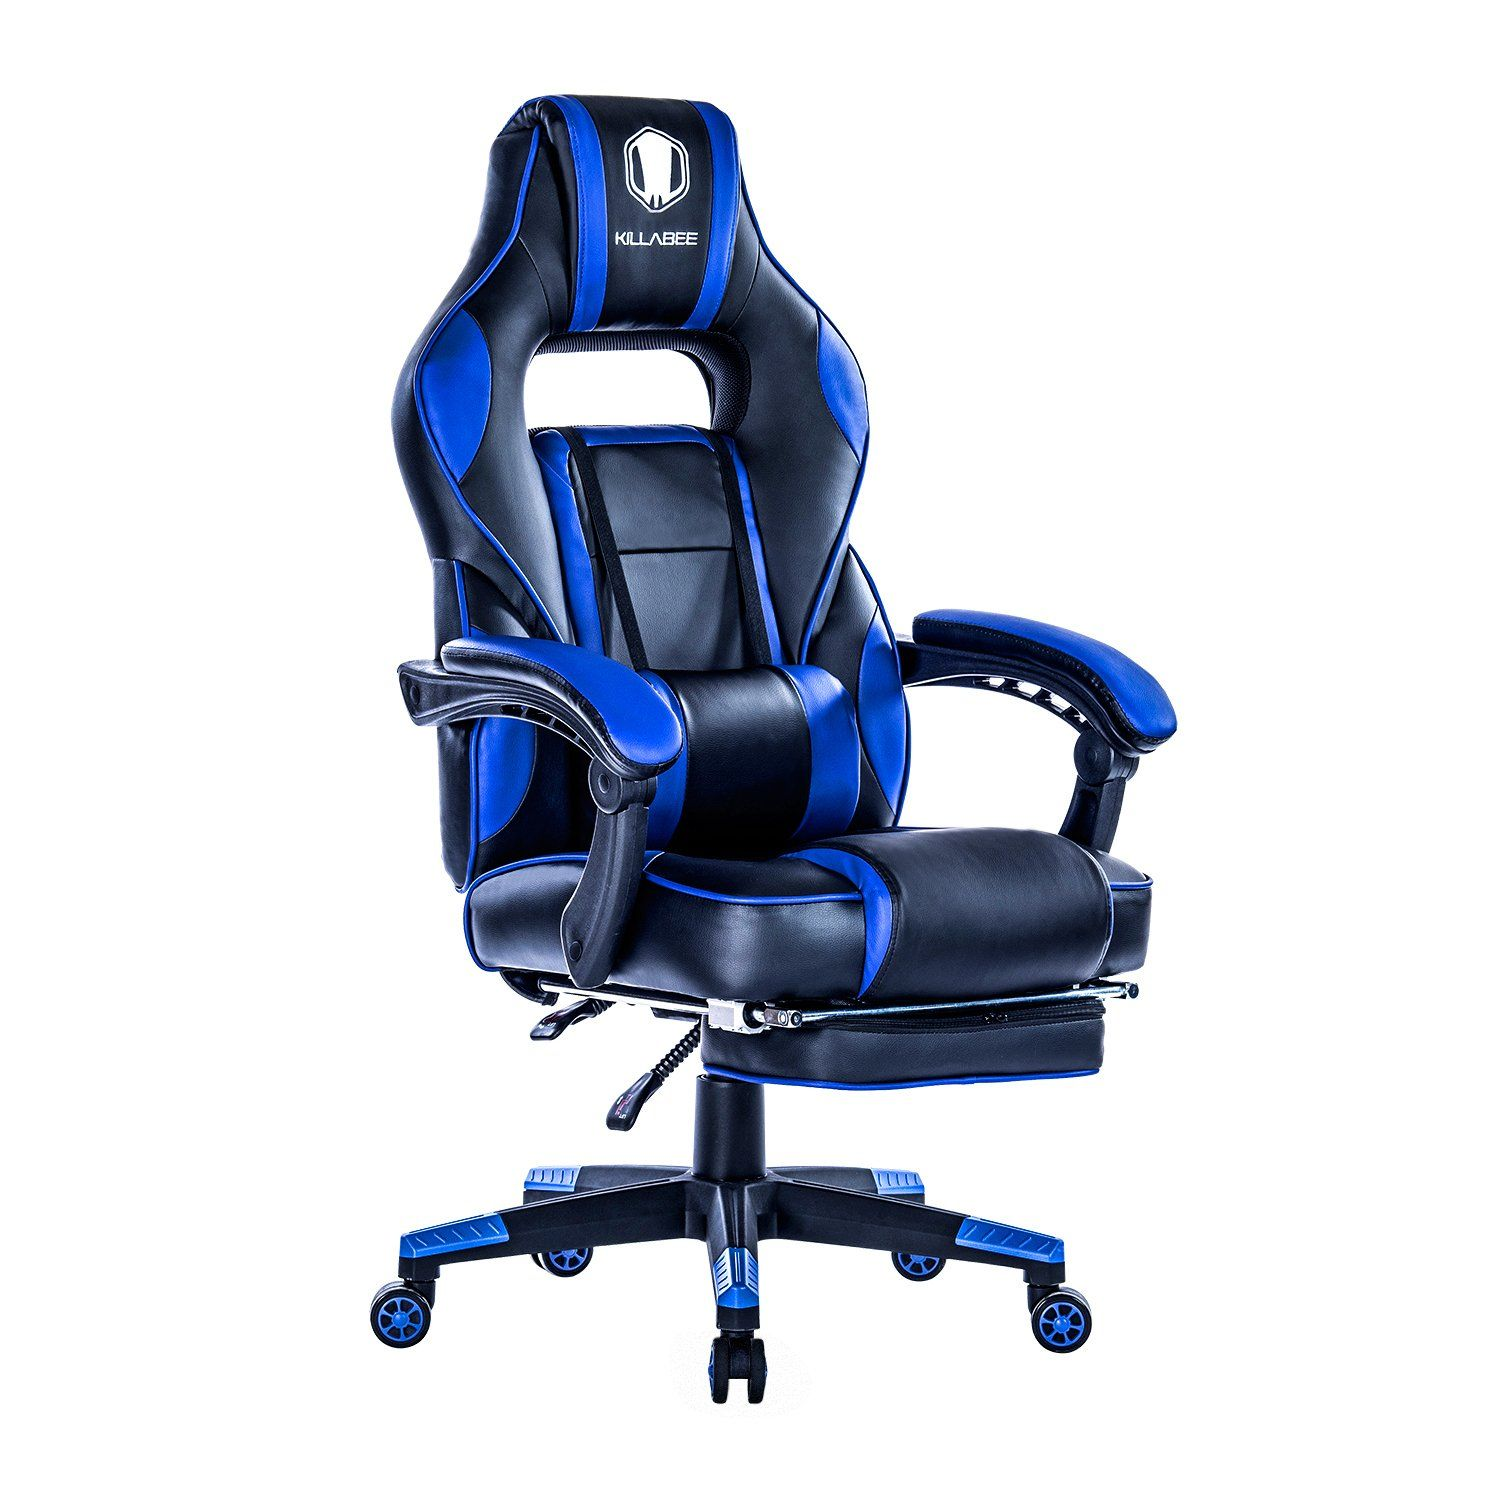 Perfect KILLABEE Racing PC Gaming Chair Ergonomic High Back Reclining Office Desk  Chair Swivel With Retractable